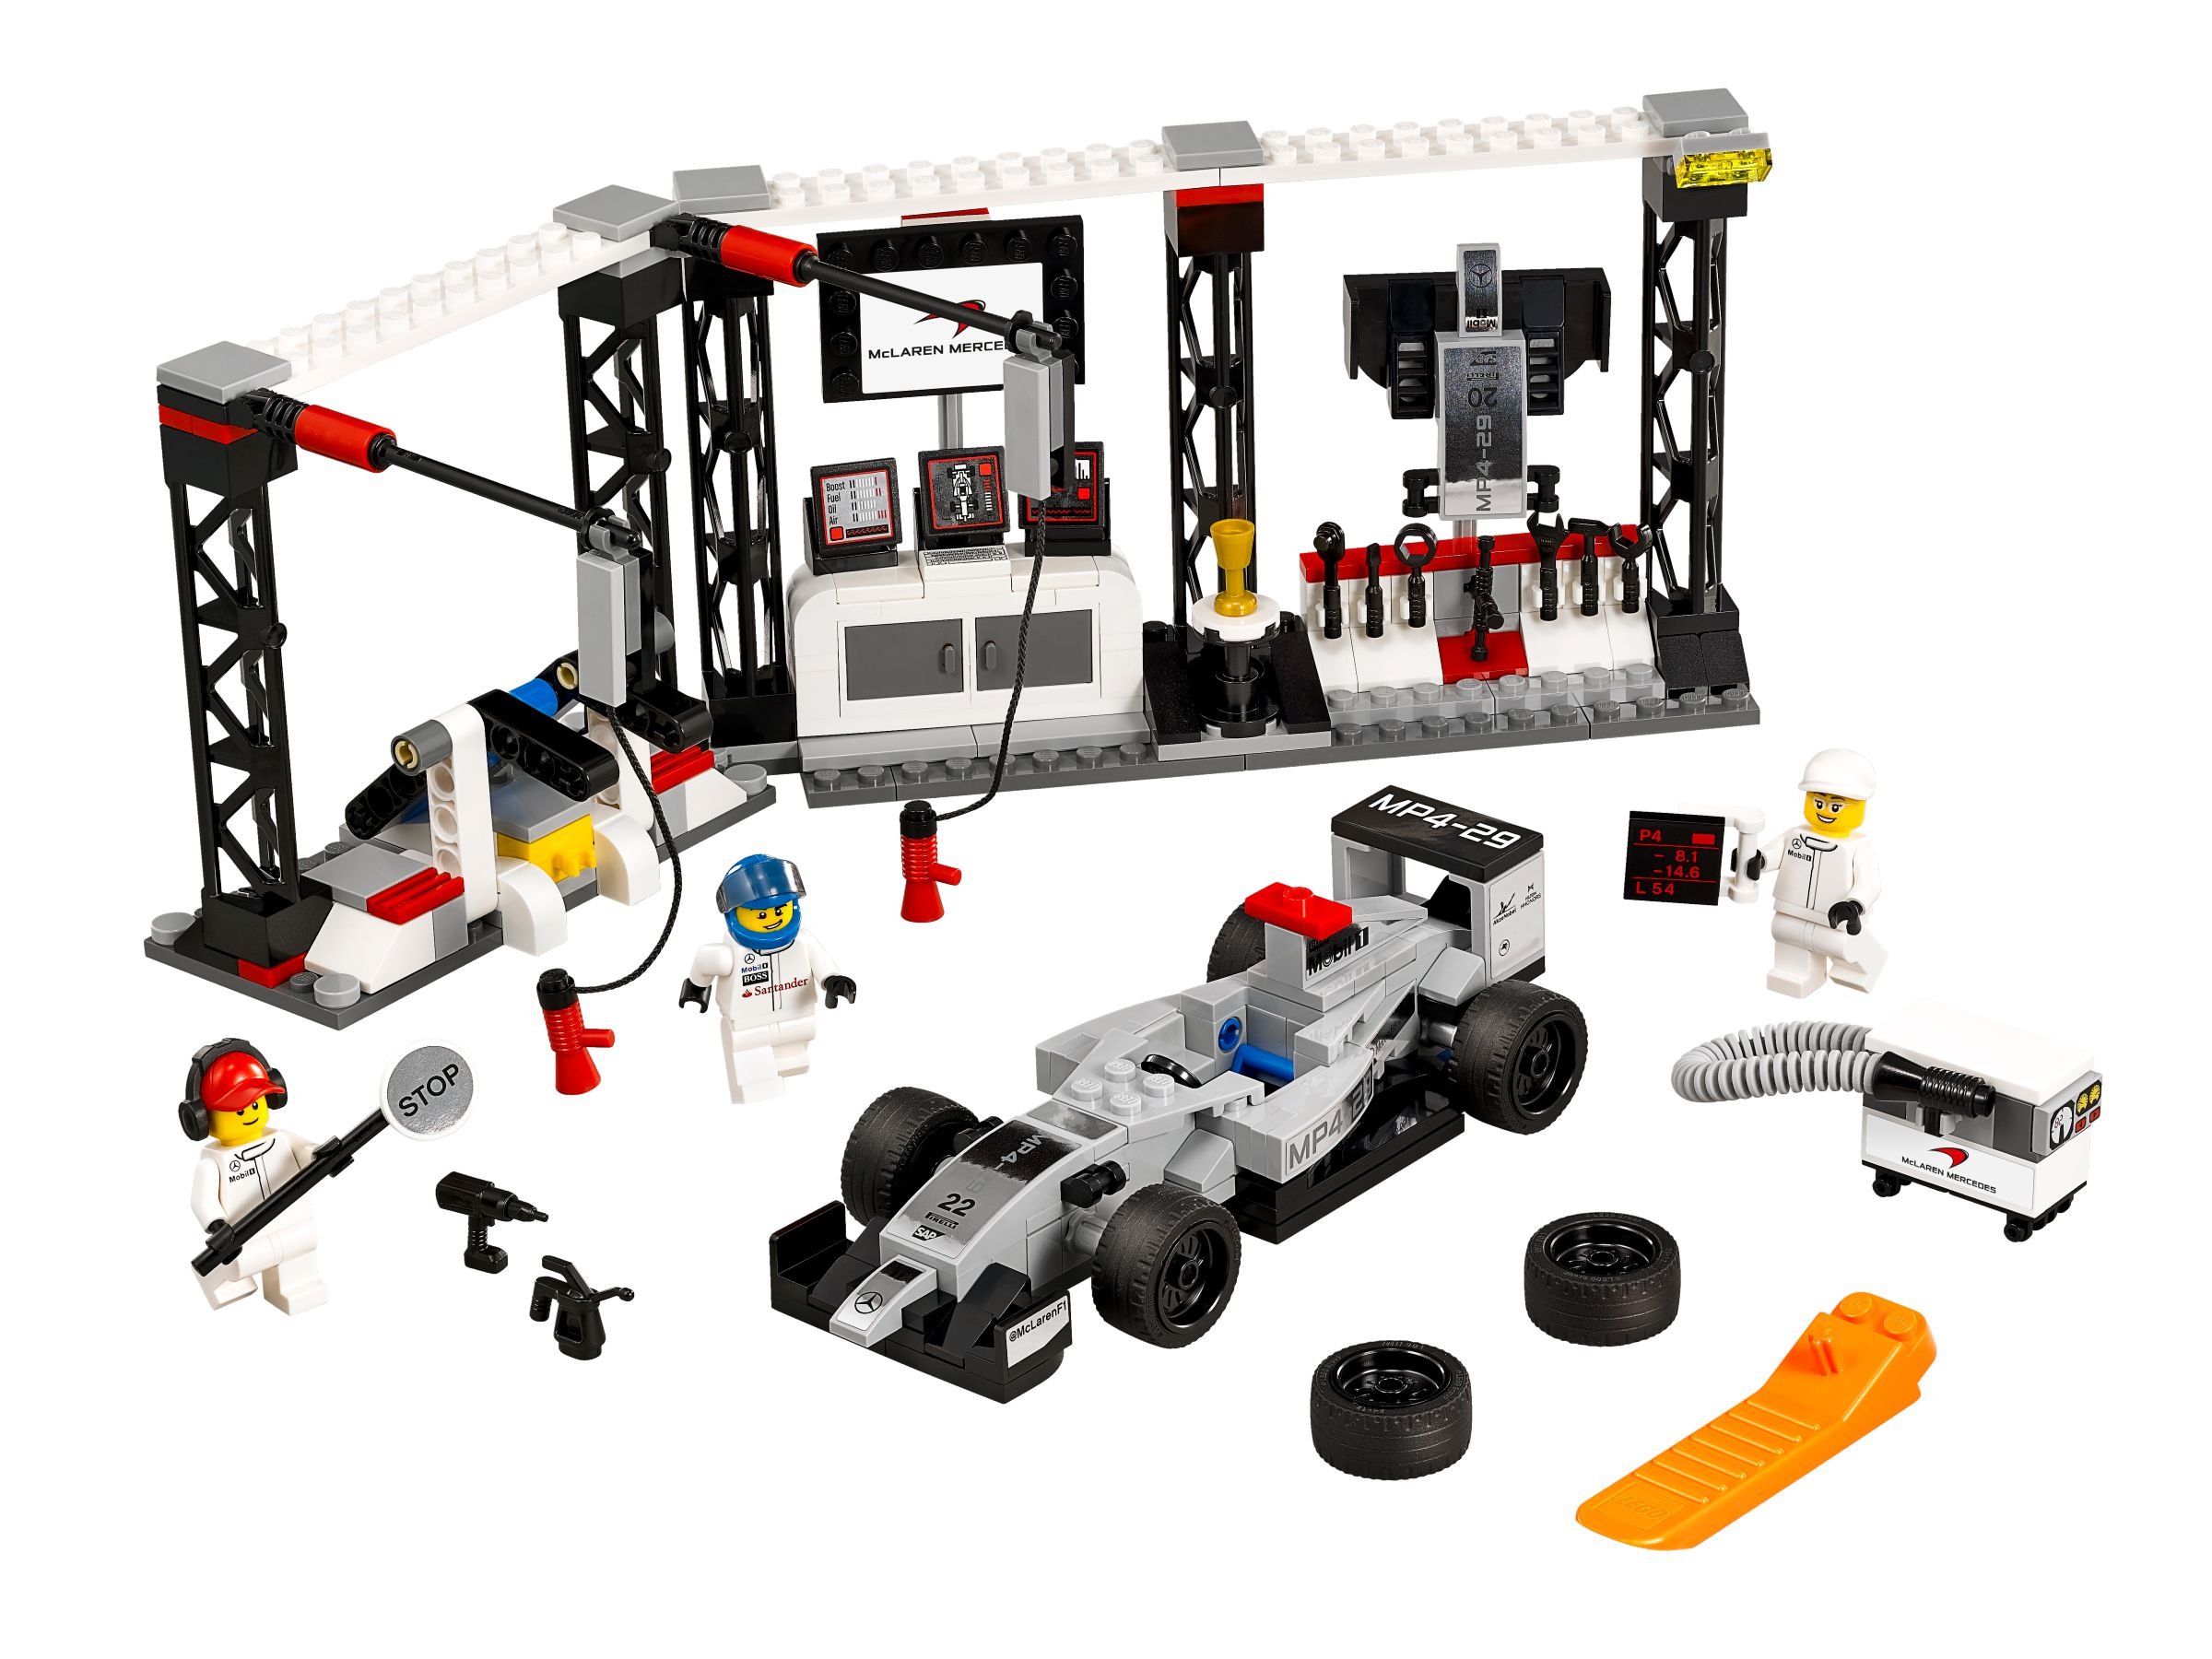 mclaren mercedes boxenstopp 75911 lego speed champions 2015 im preisvergleich mclaren. Black Bedroom Furniture Sets. Home Design Ideas